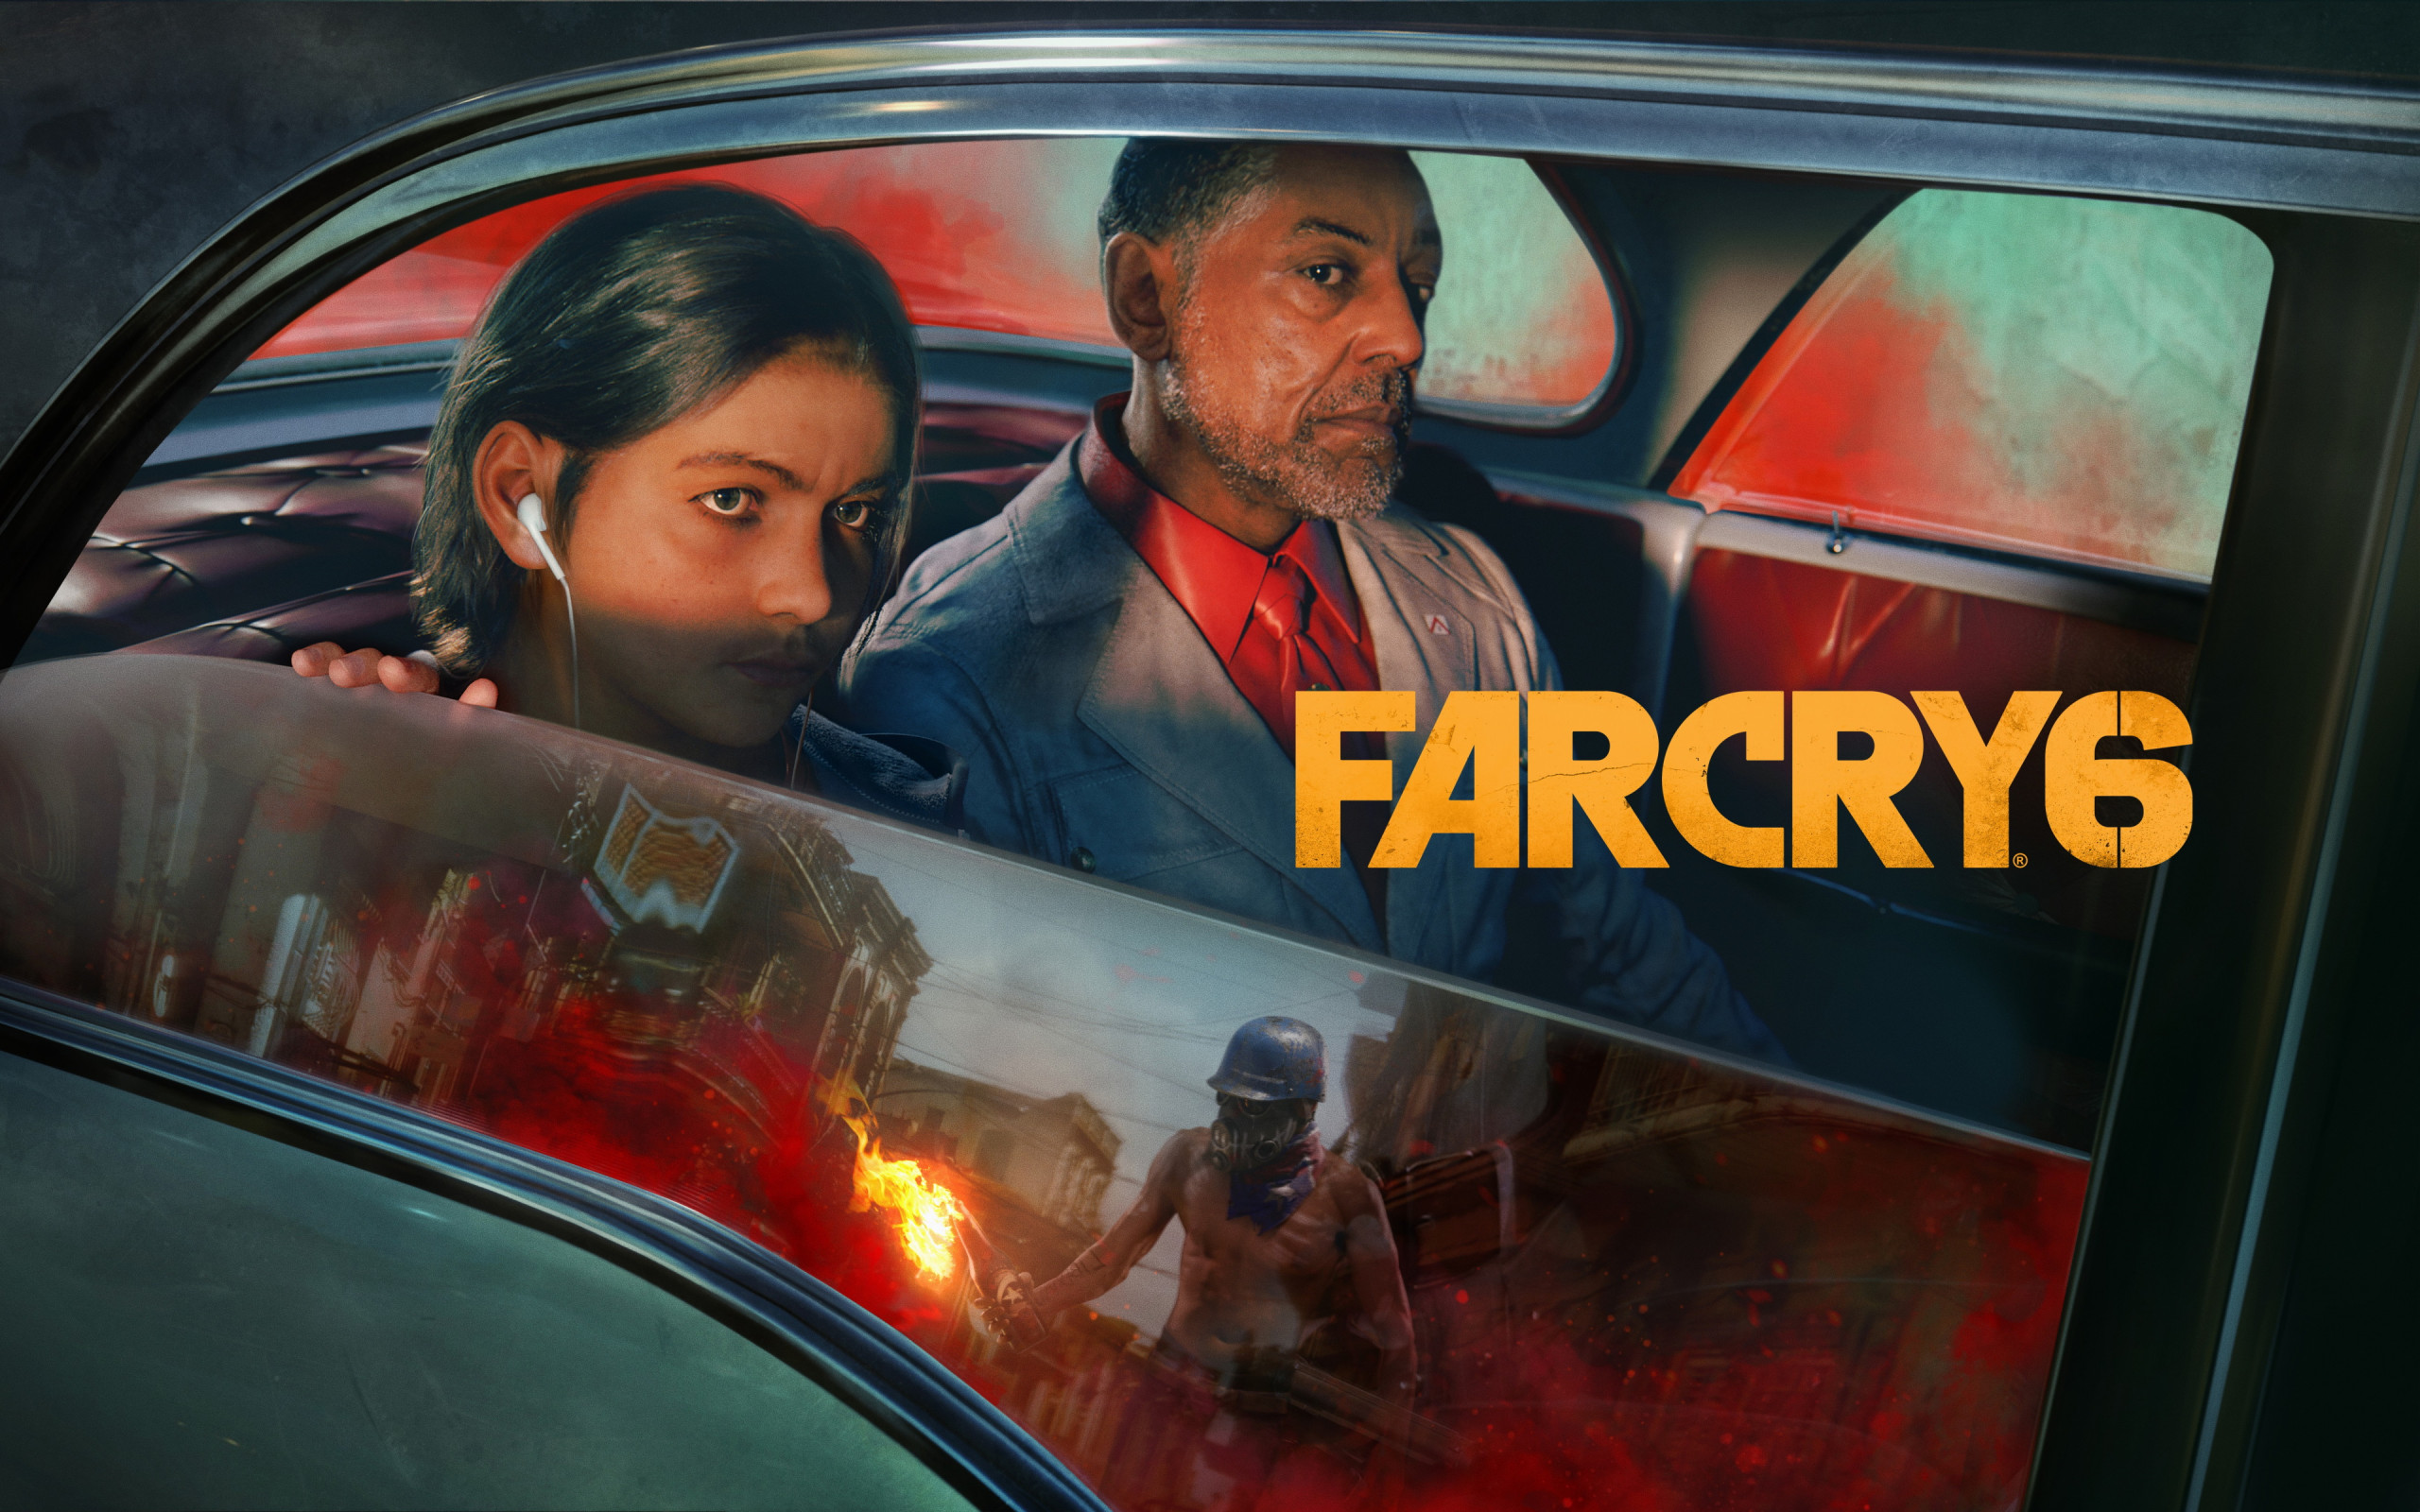 Farcry 6 wallpaper 2560x1600